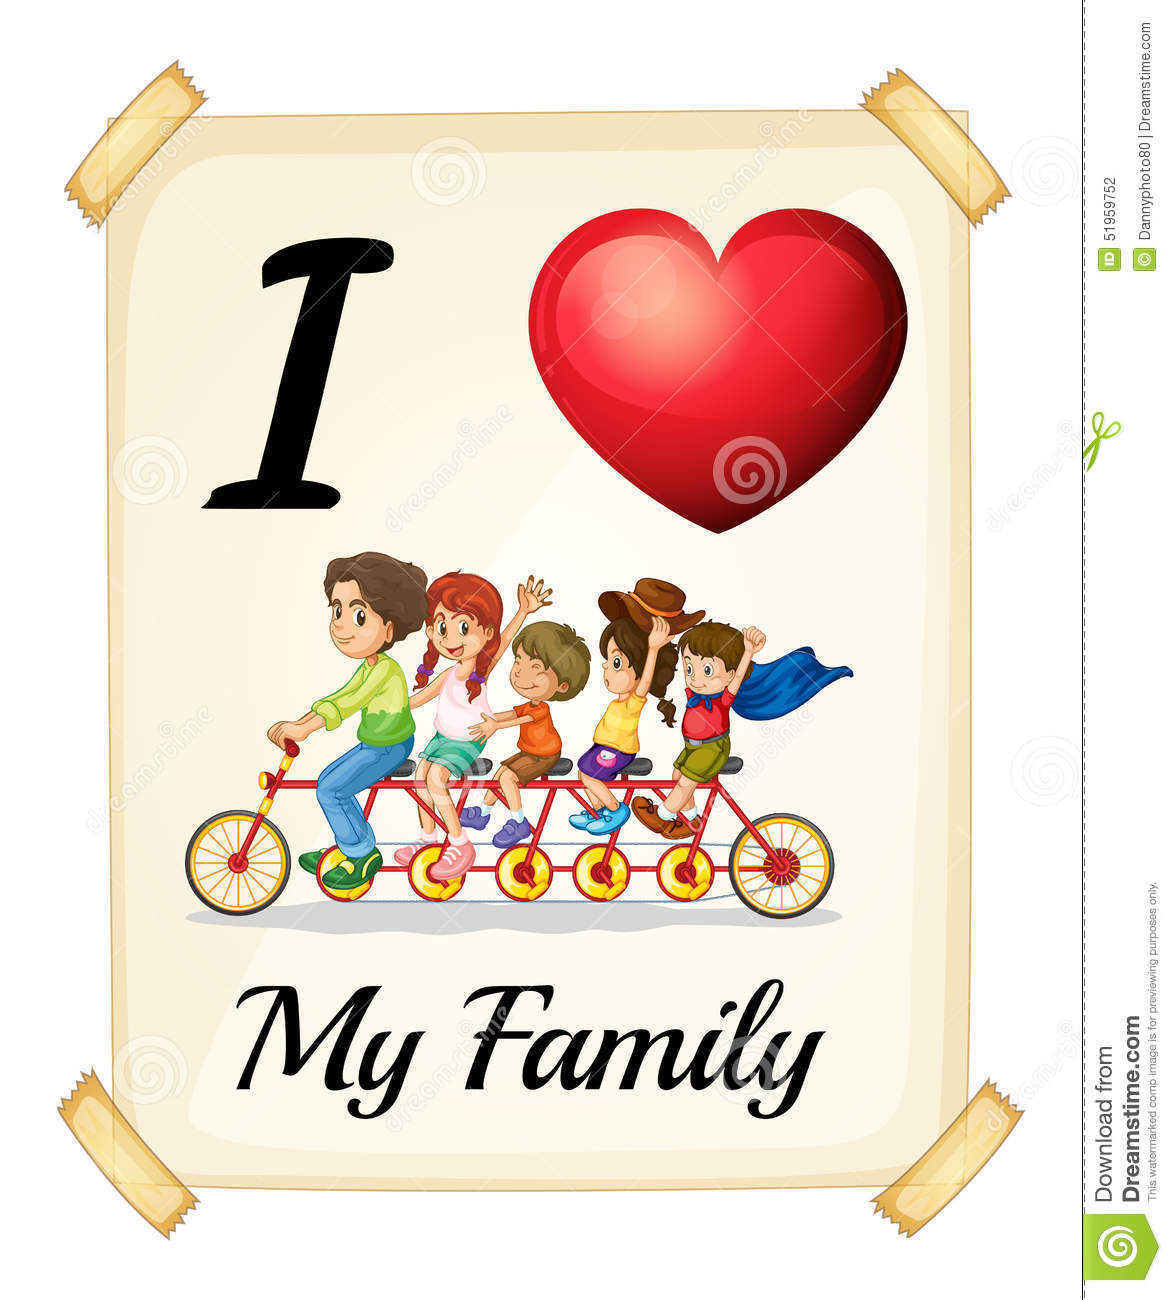 I Love My Family Stock Vector Illustration Of Banner 51959752